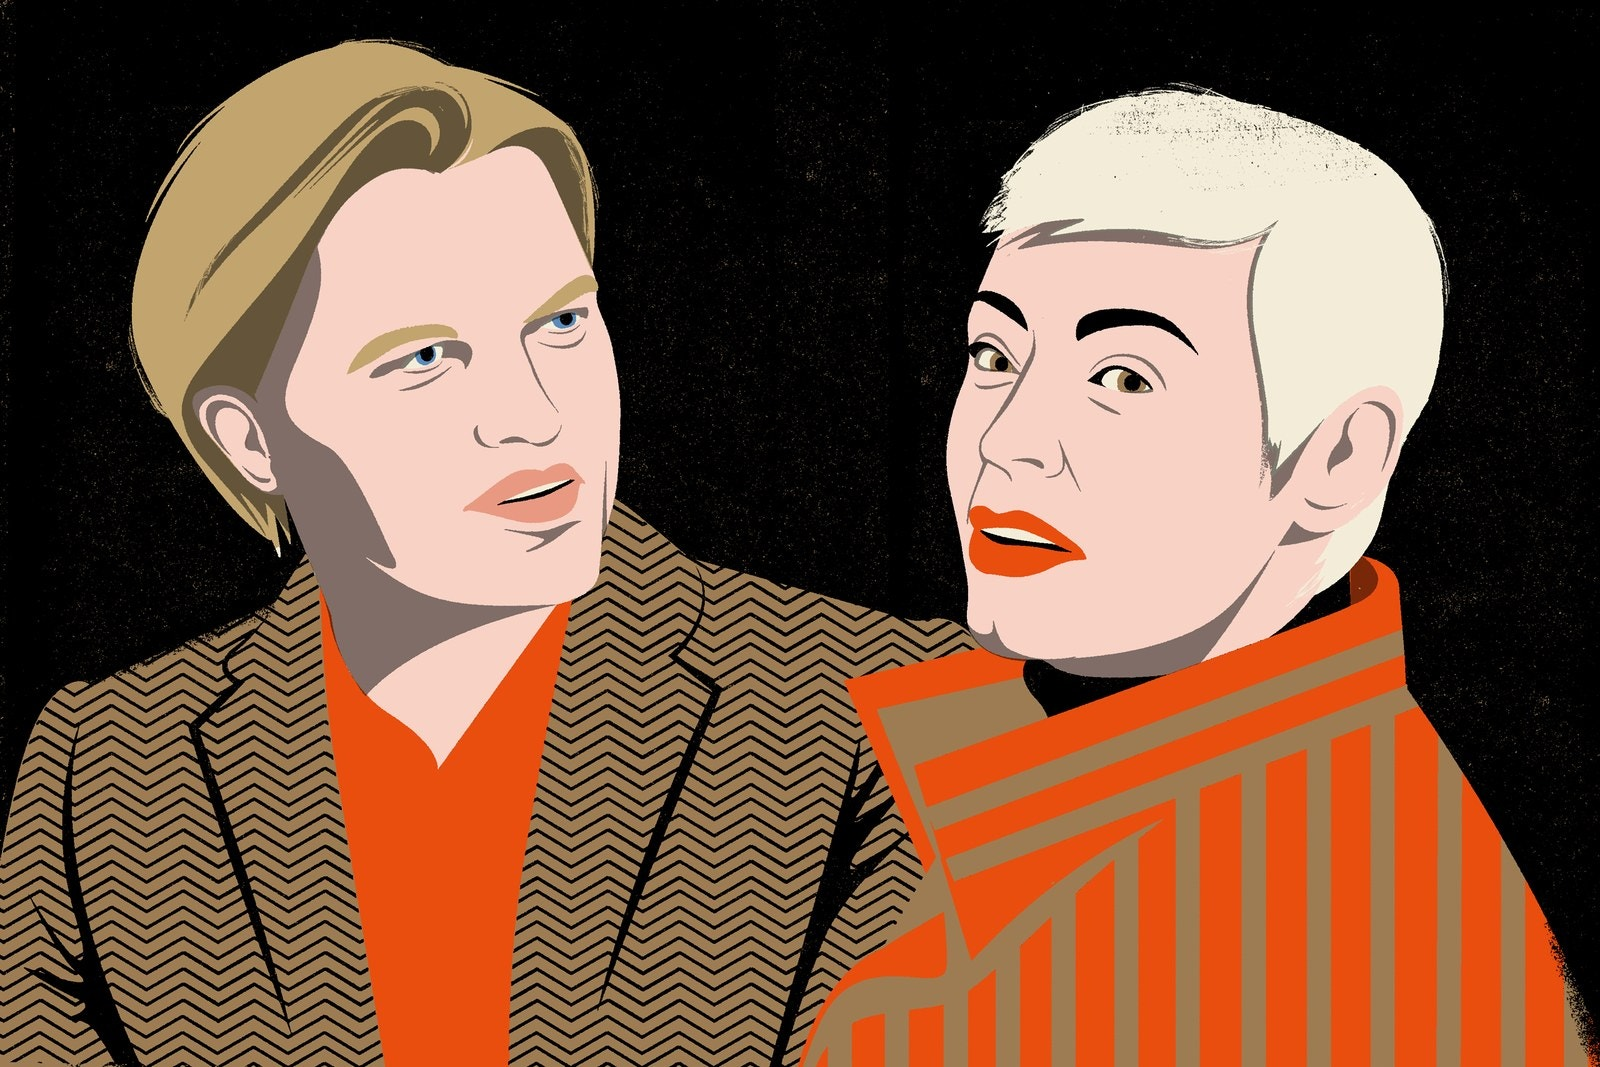 An illustration of Ronan Farrow and Rose McGowan